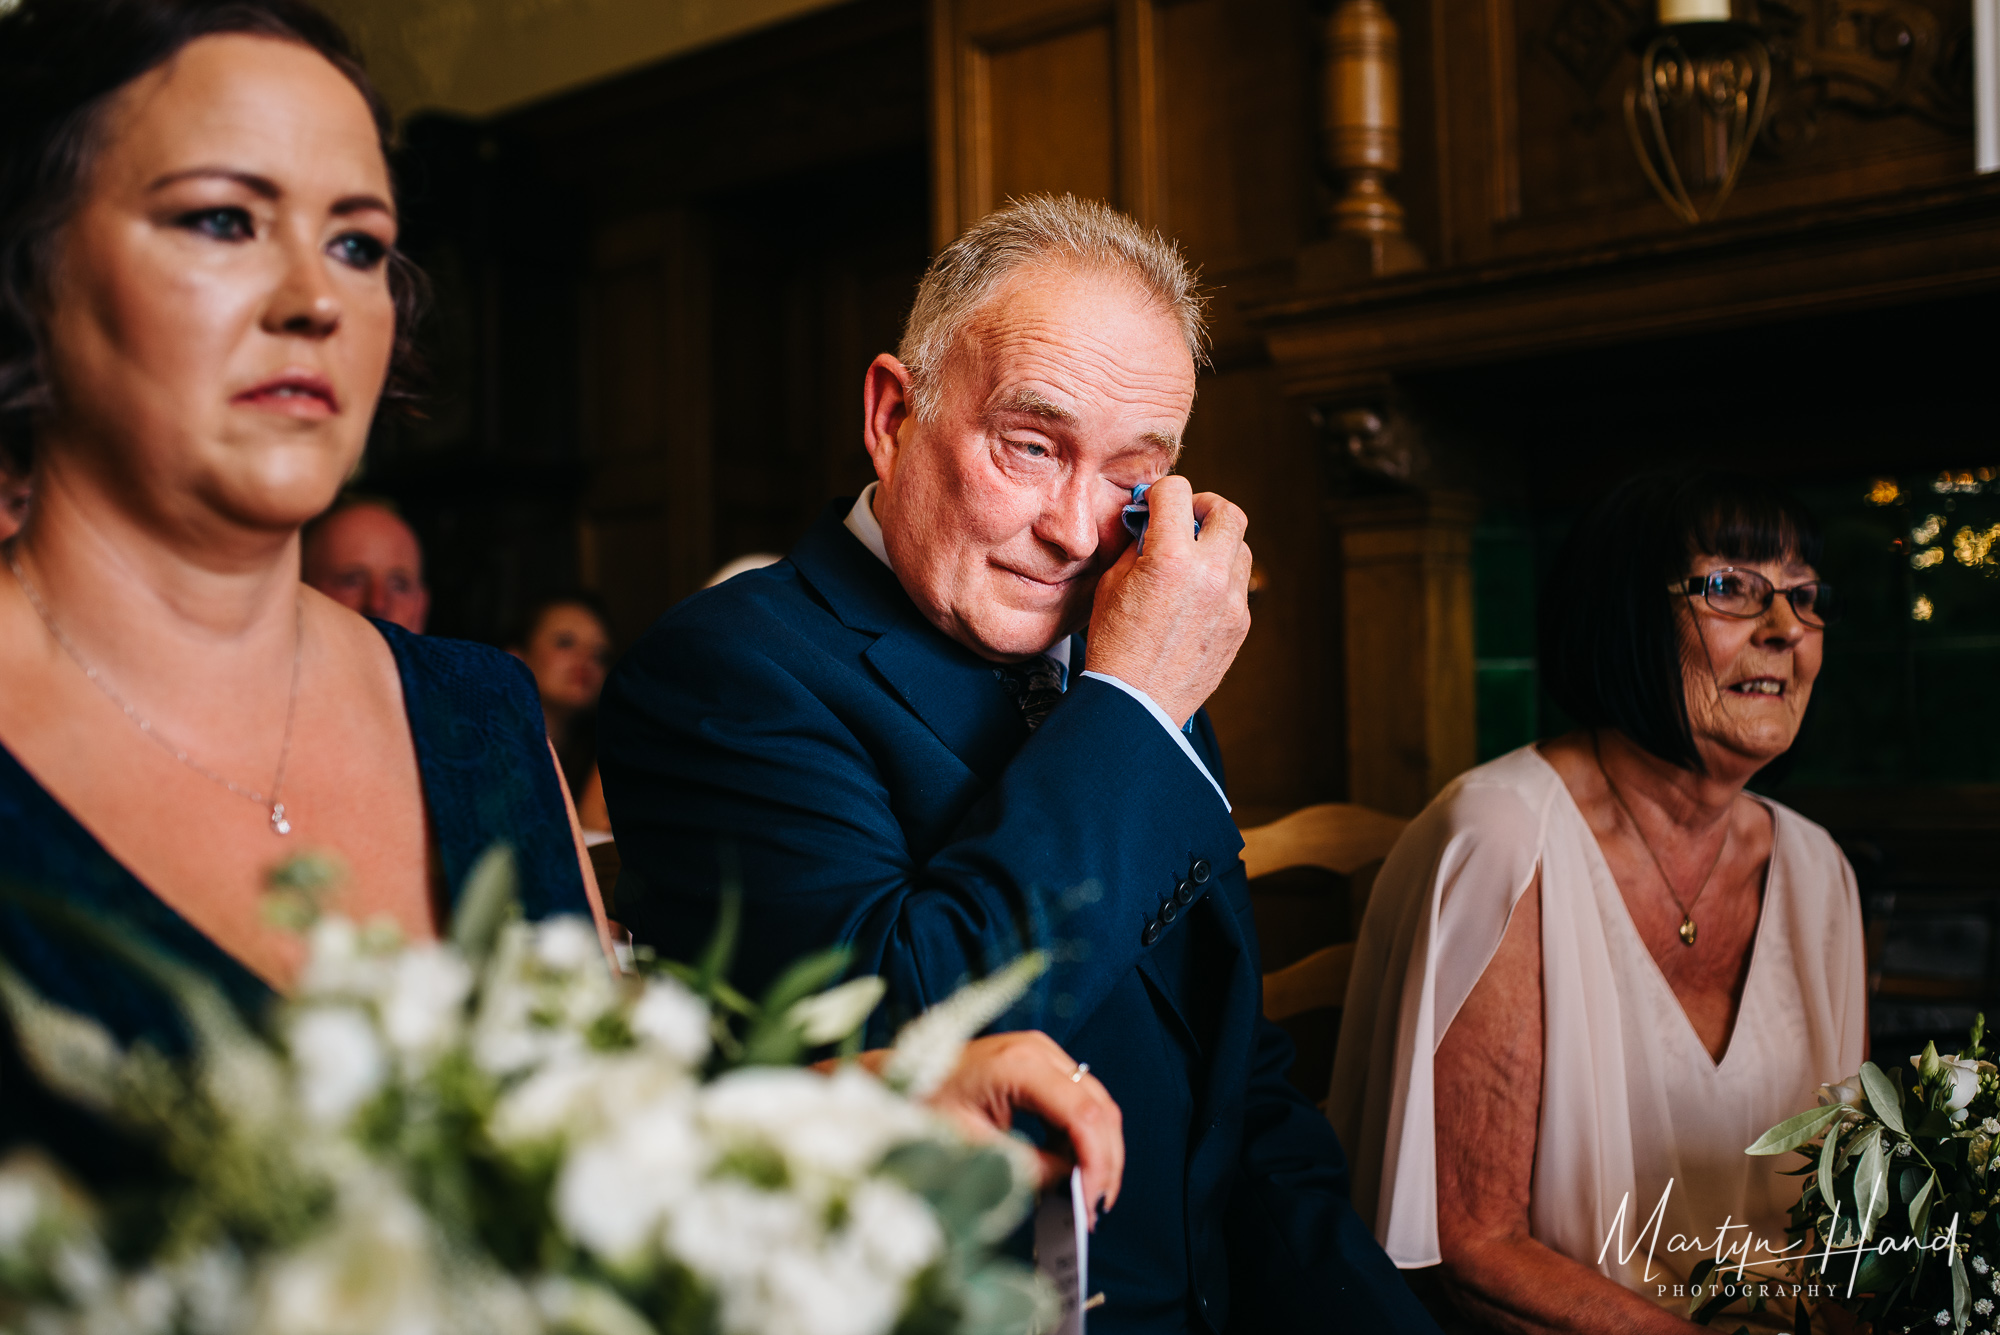 Cragwood Country House Wedding Photographer Martyn Hand Photogra